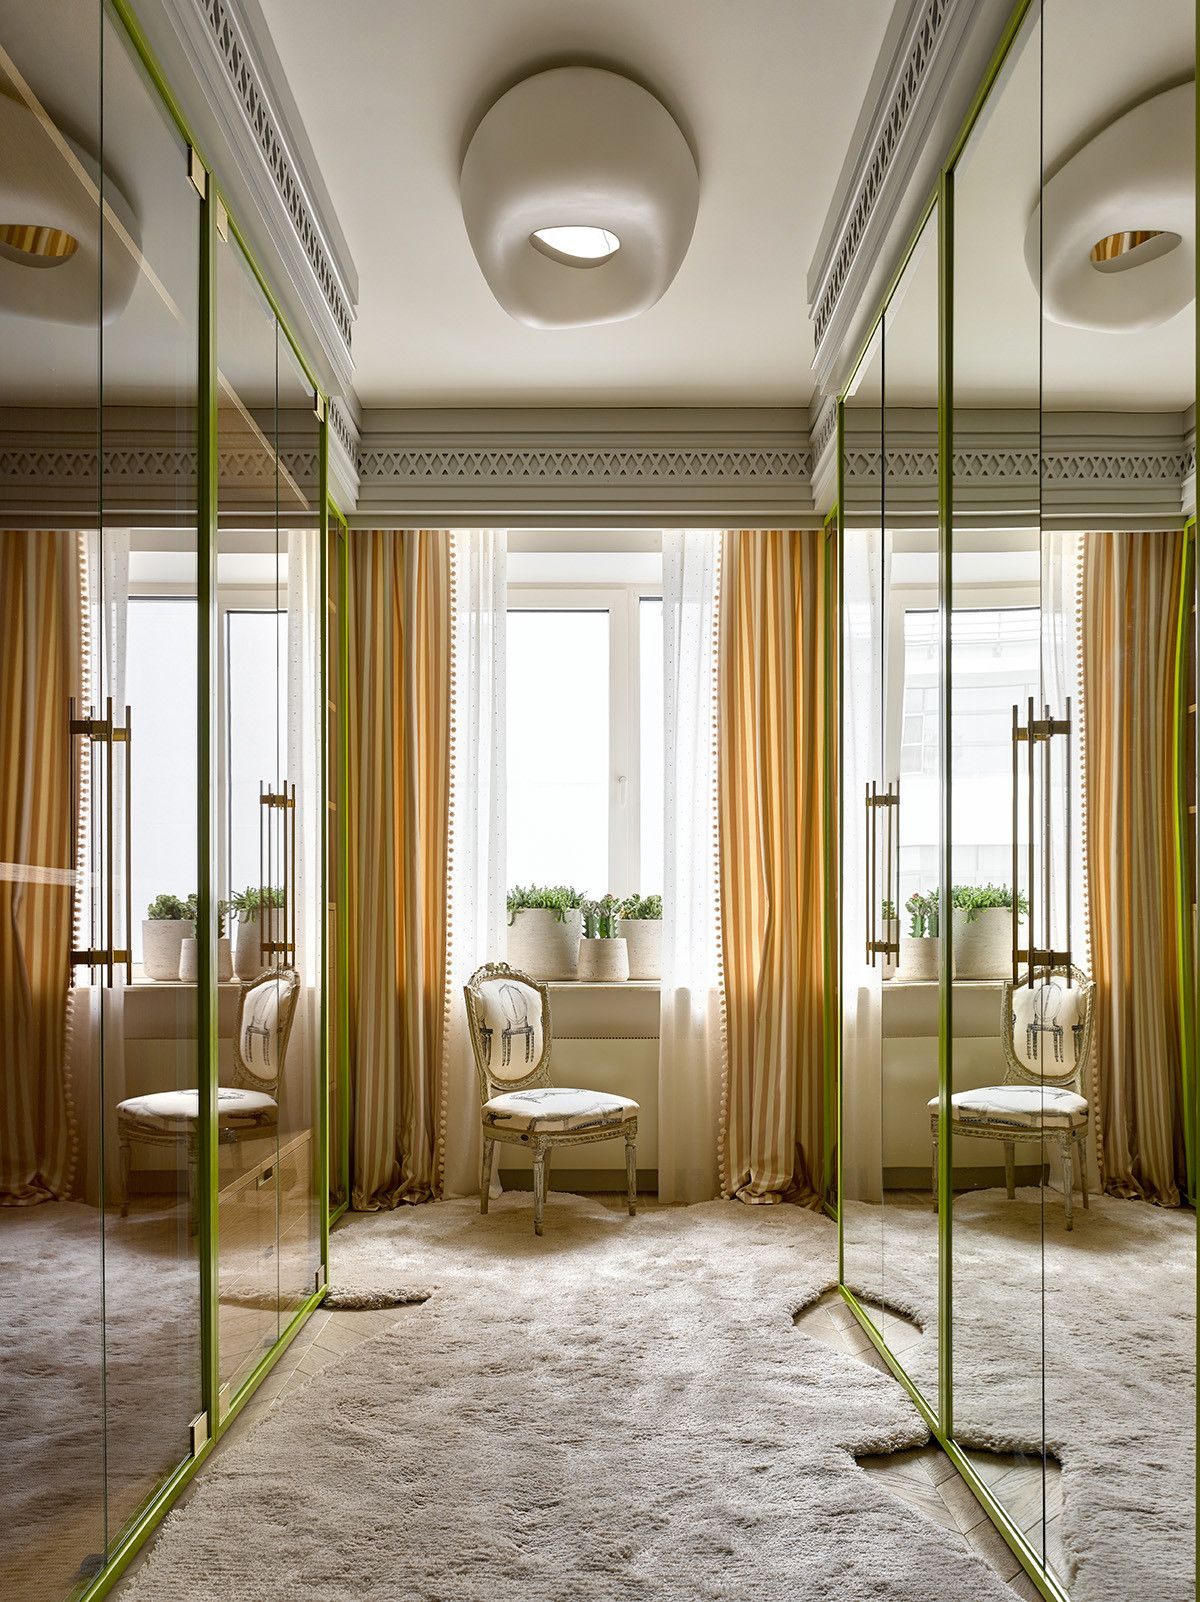 Fabulous carpeted walk-in closet with mirrored wardrobe doors and a tinge of green